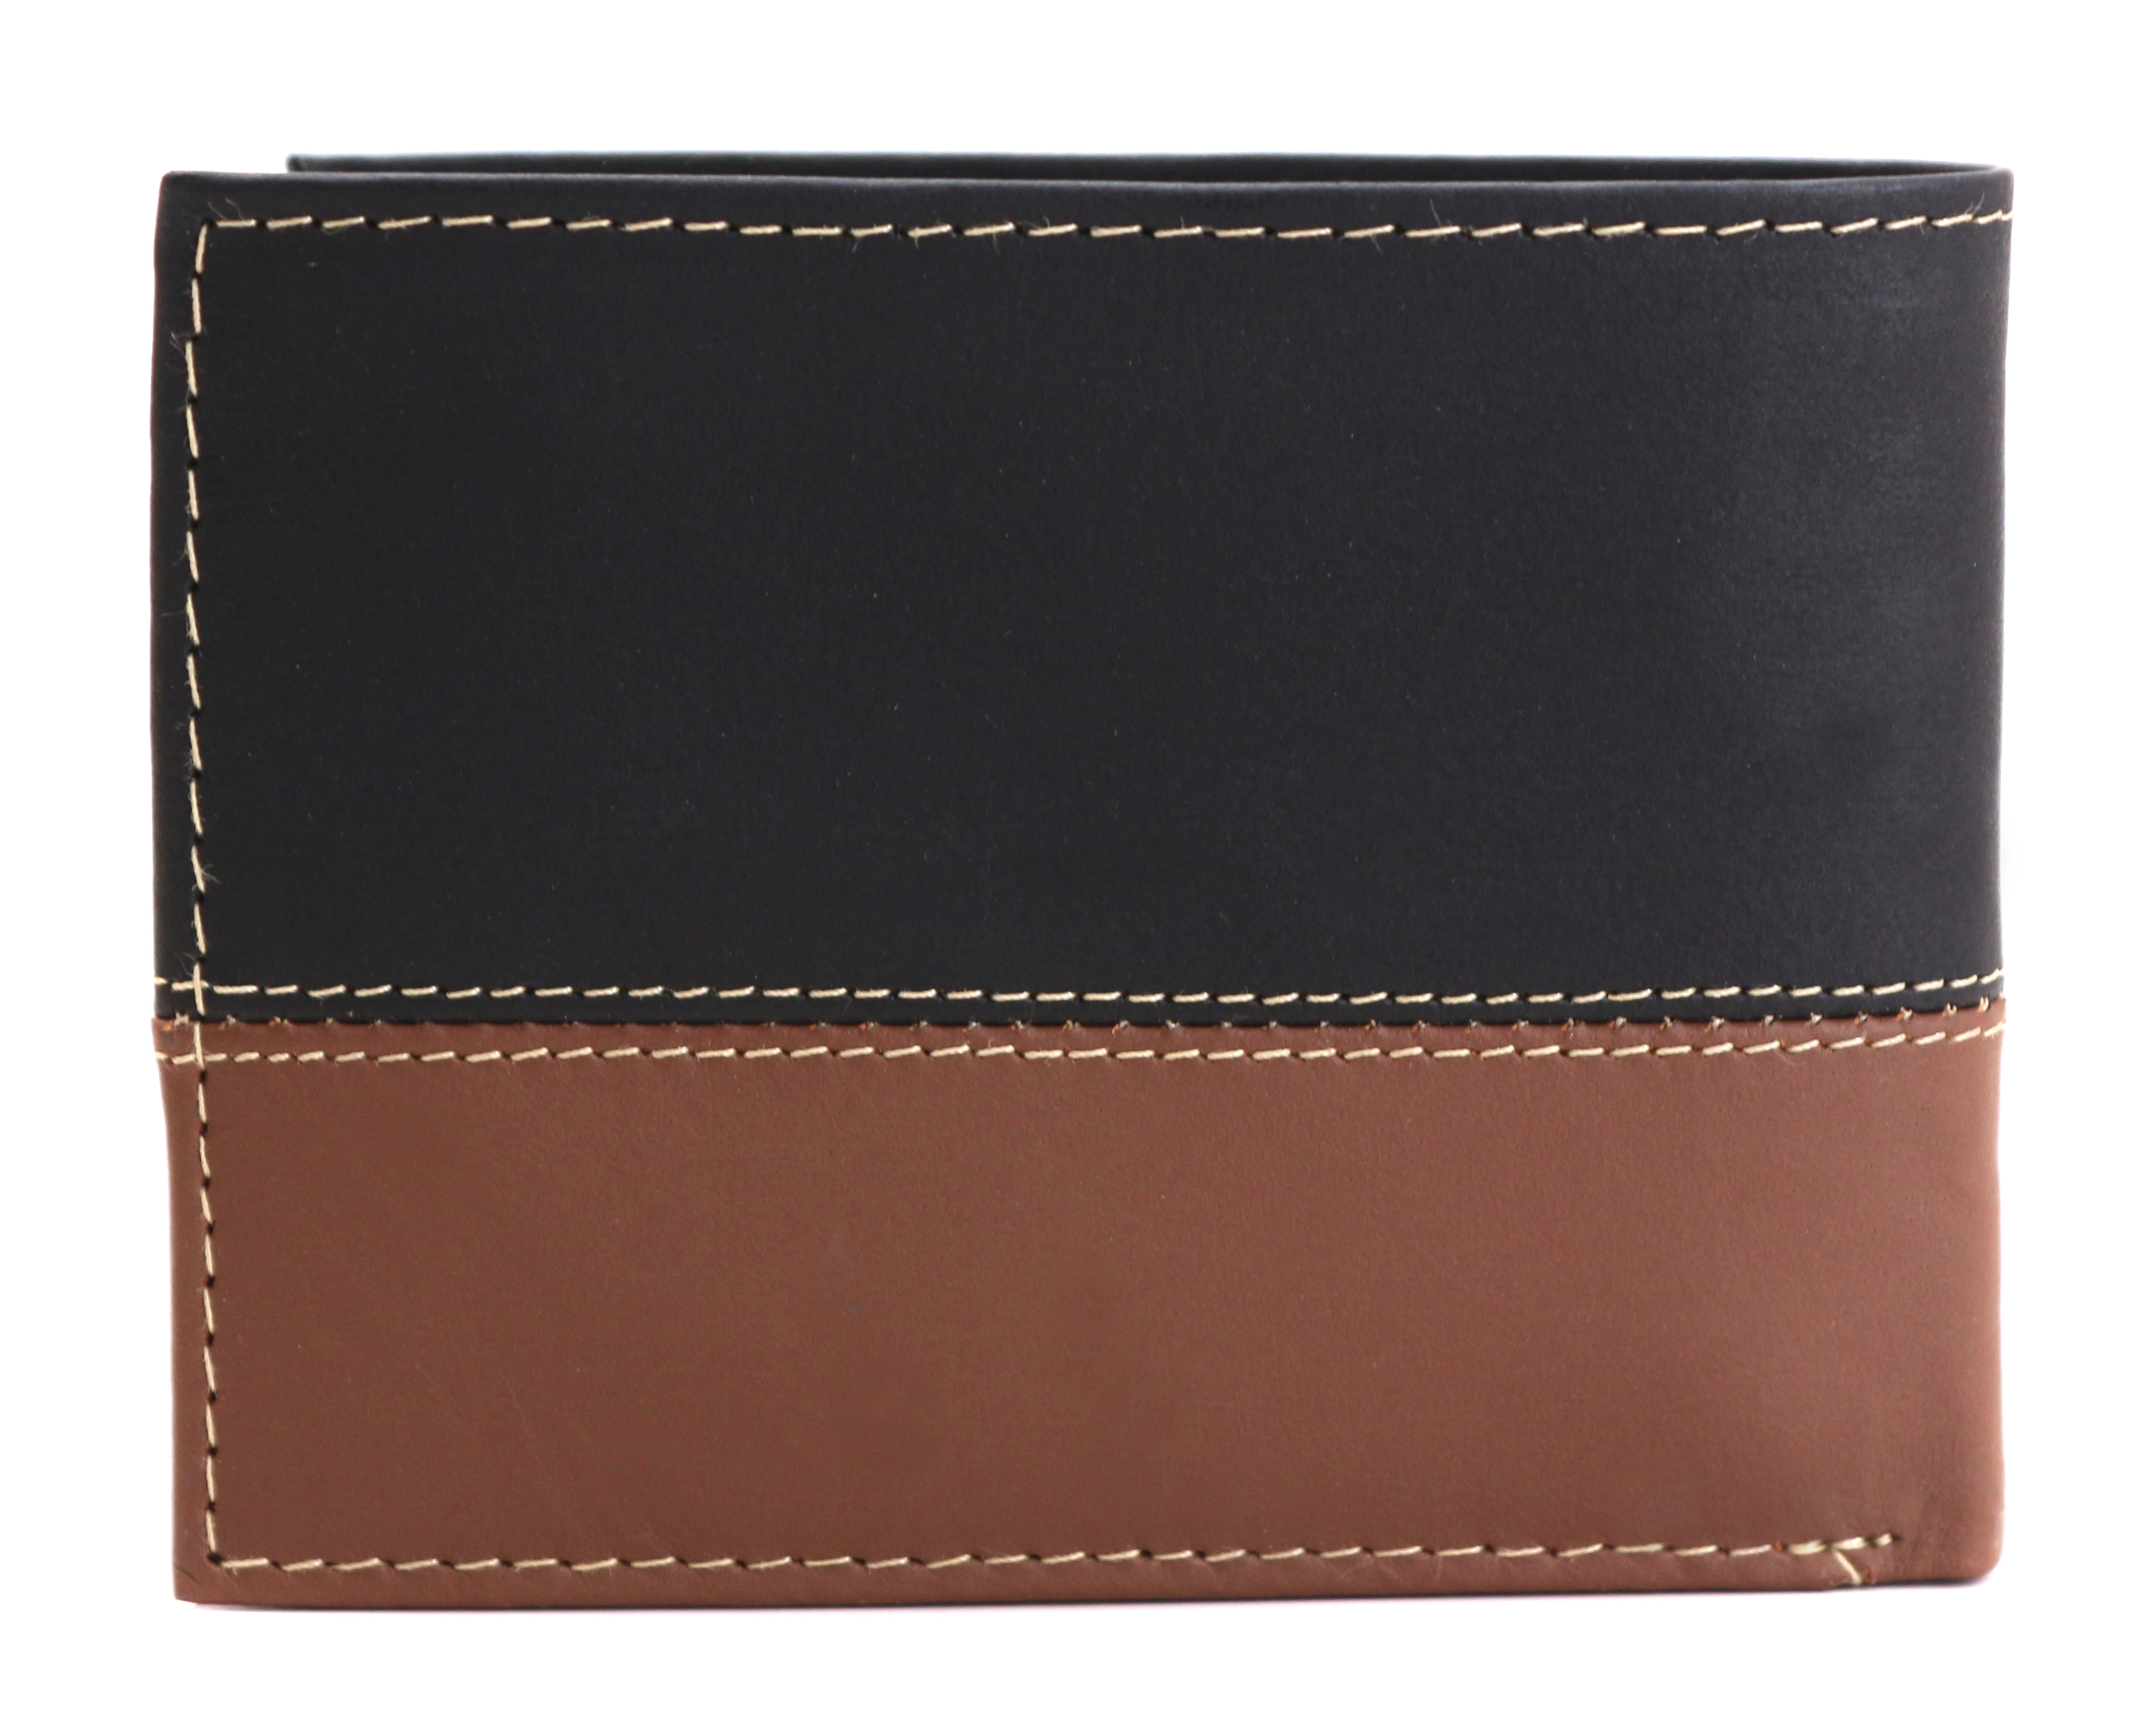 Timberland-Men-039-s-Genuine-Two-Tone-Leather-Credit-Card-Billfold-Commuter-Wallet thumbnail 12